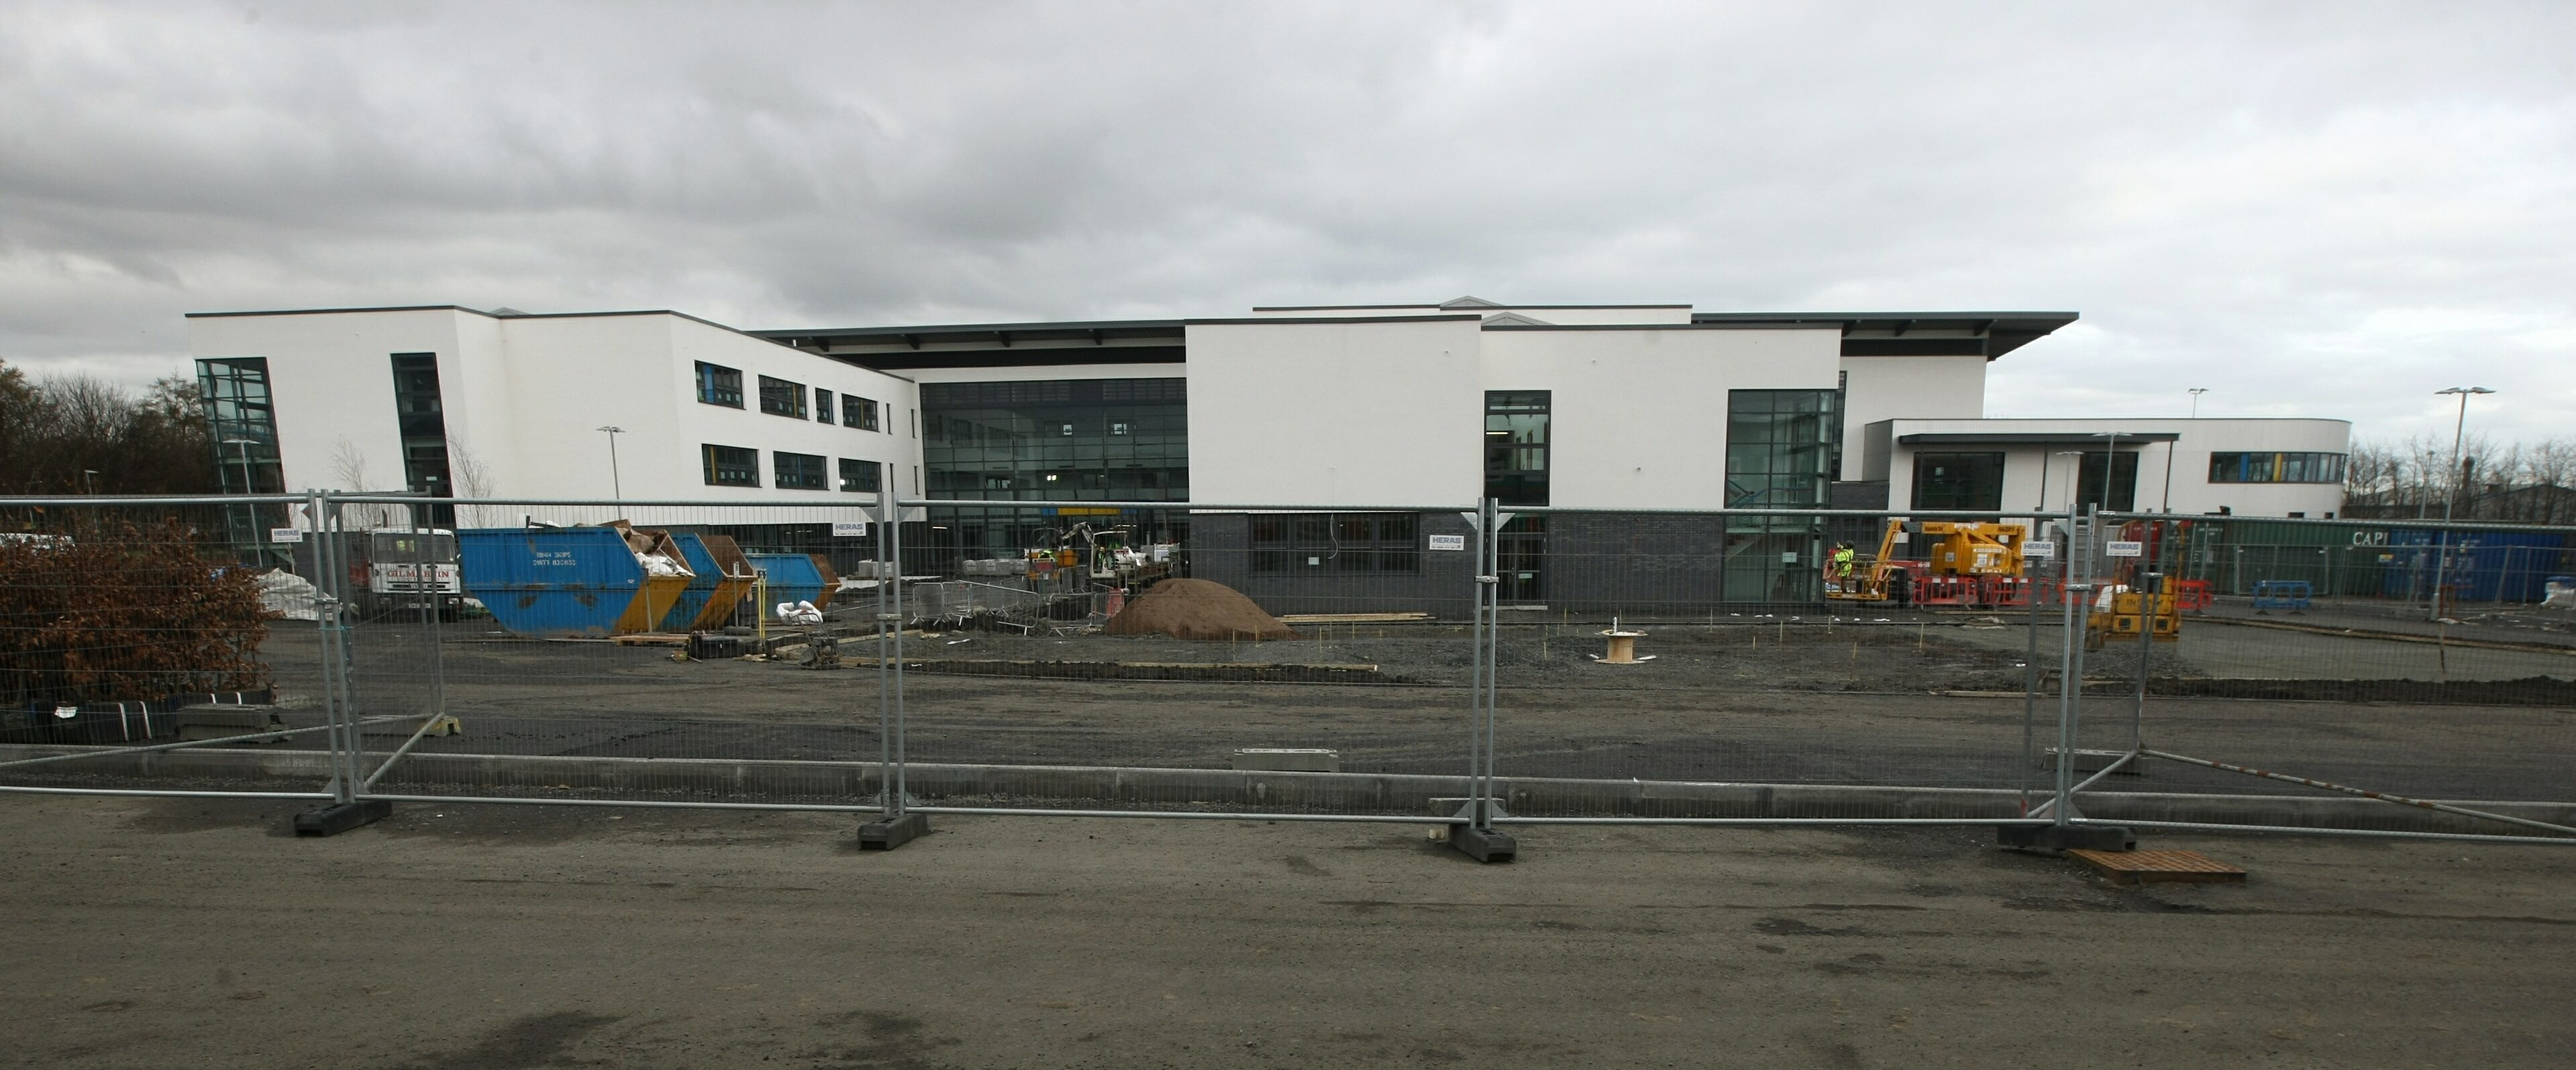 The Windmill Community Campus in Kirkcaldy is due to open in August.